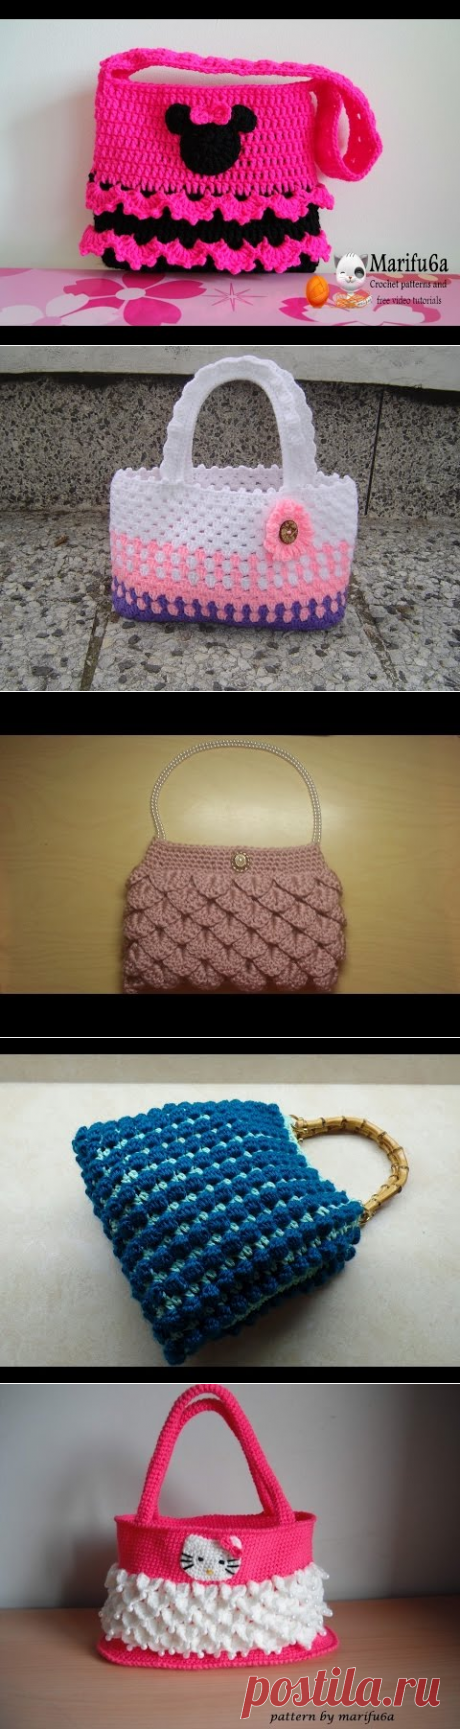 Posts Search Crochet Bags